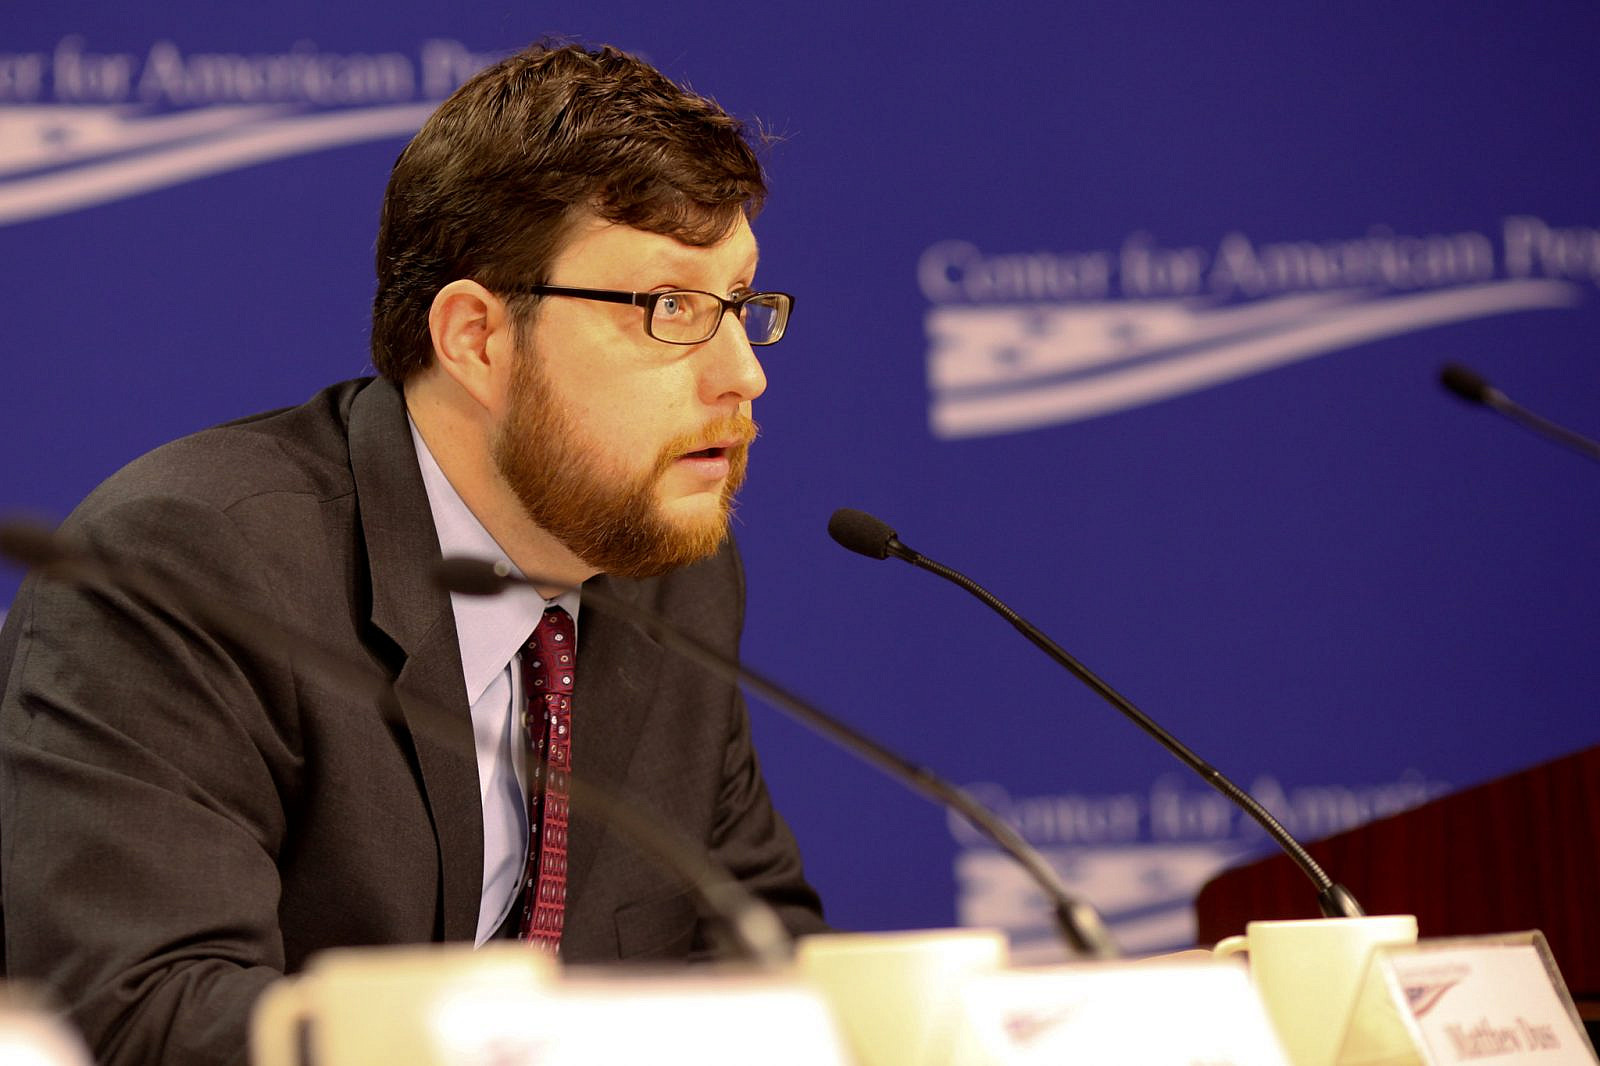 Matt Duss as an analyst with the Center for American Progress, speaking at event hosted by the Century Foundation and the National Security Network. April 14, 2010. (Center for American Progress/Flickr)